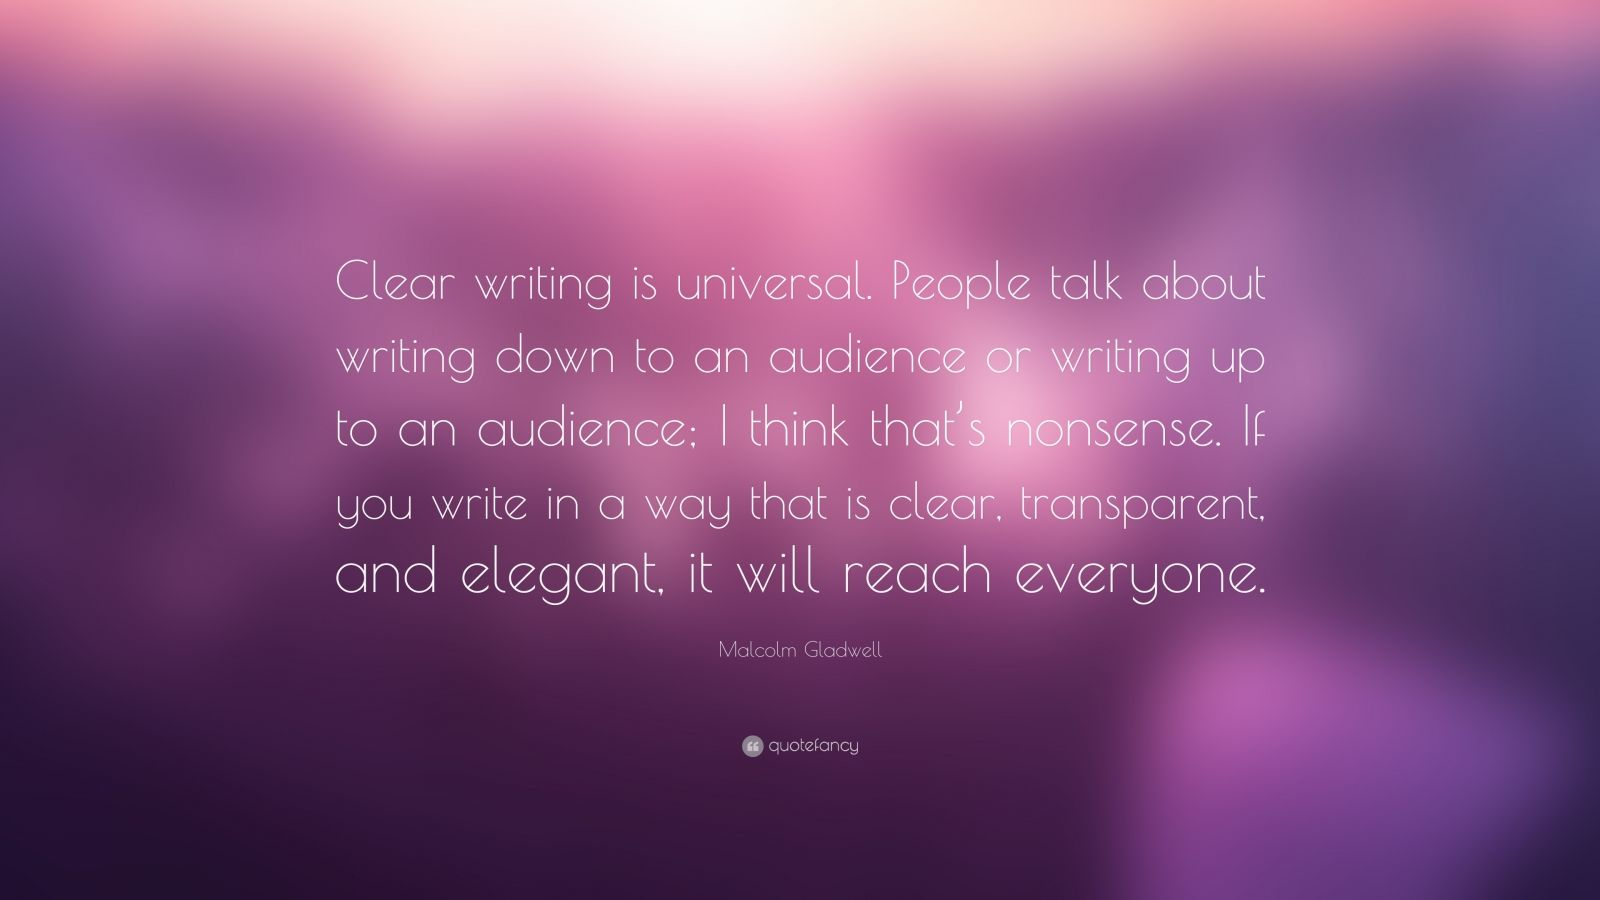 """Malcolm Gladwell Quote: """"Clear writing is universal. People talk about writing down to an audience or writing up to an audience; I think that's nonsense. If you write in a way that is clear, transparent, and elegant, it will reach everyone."""""""